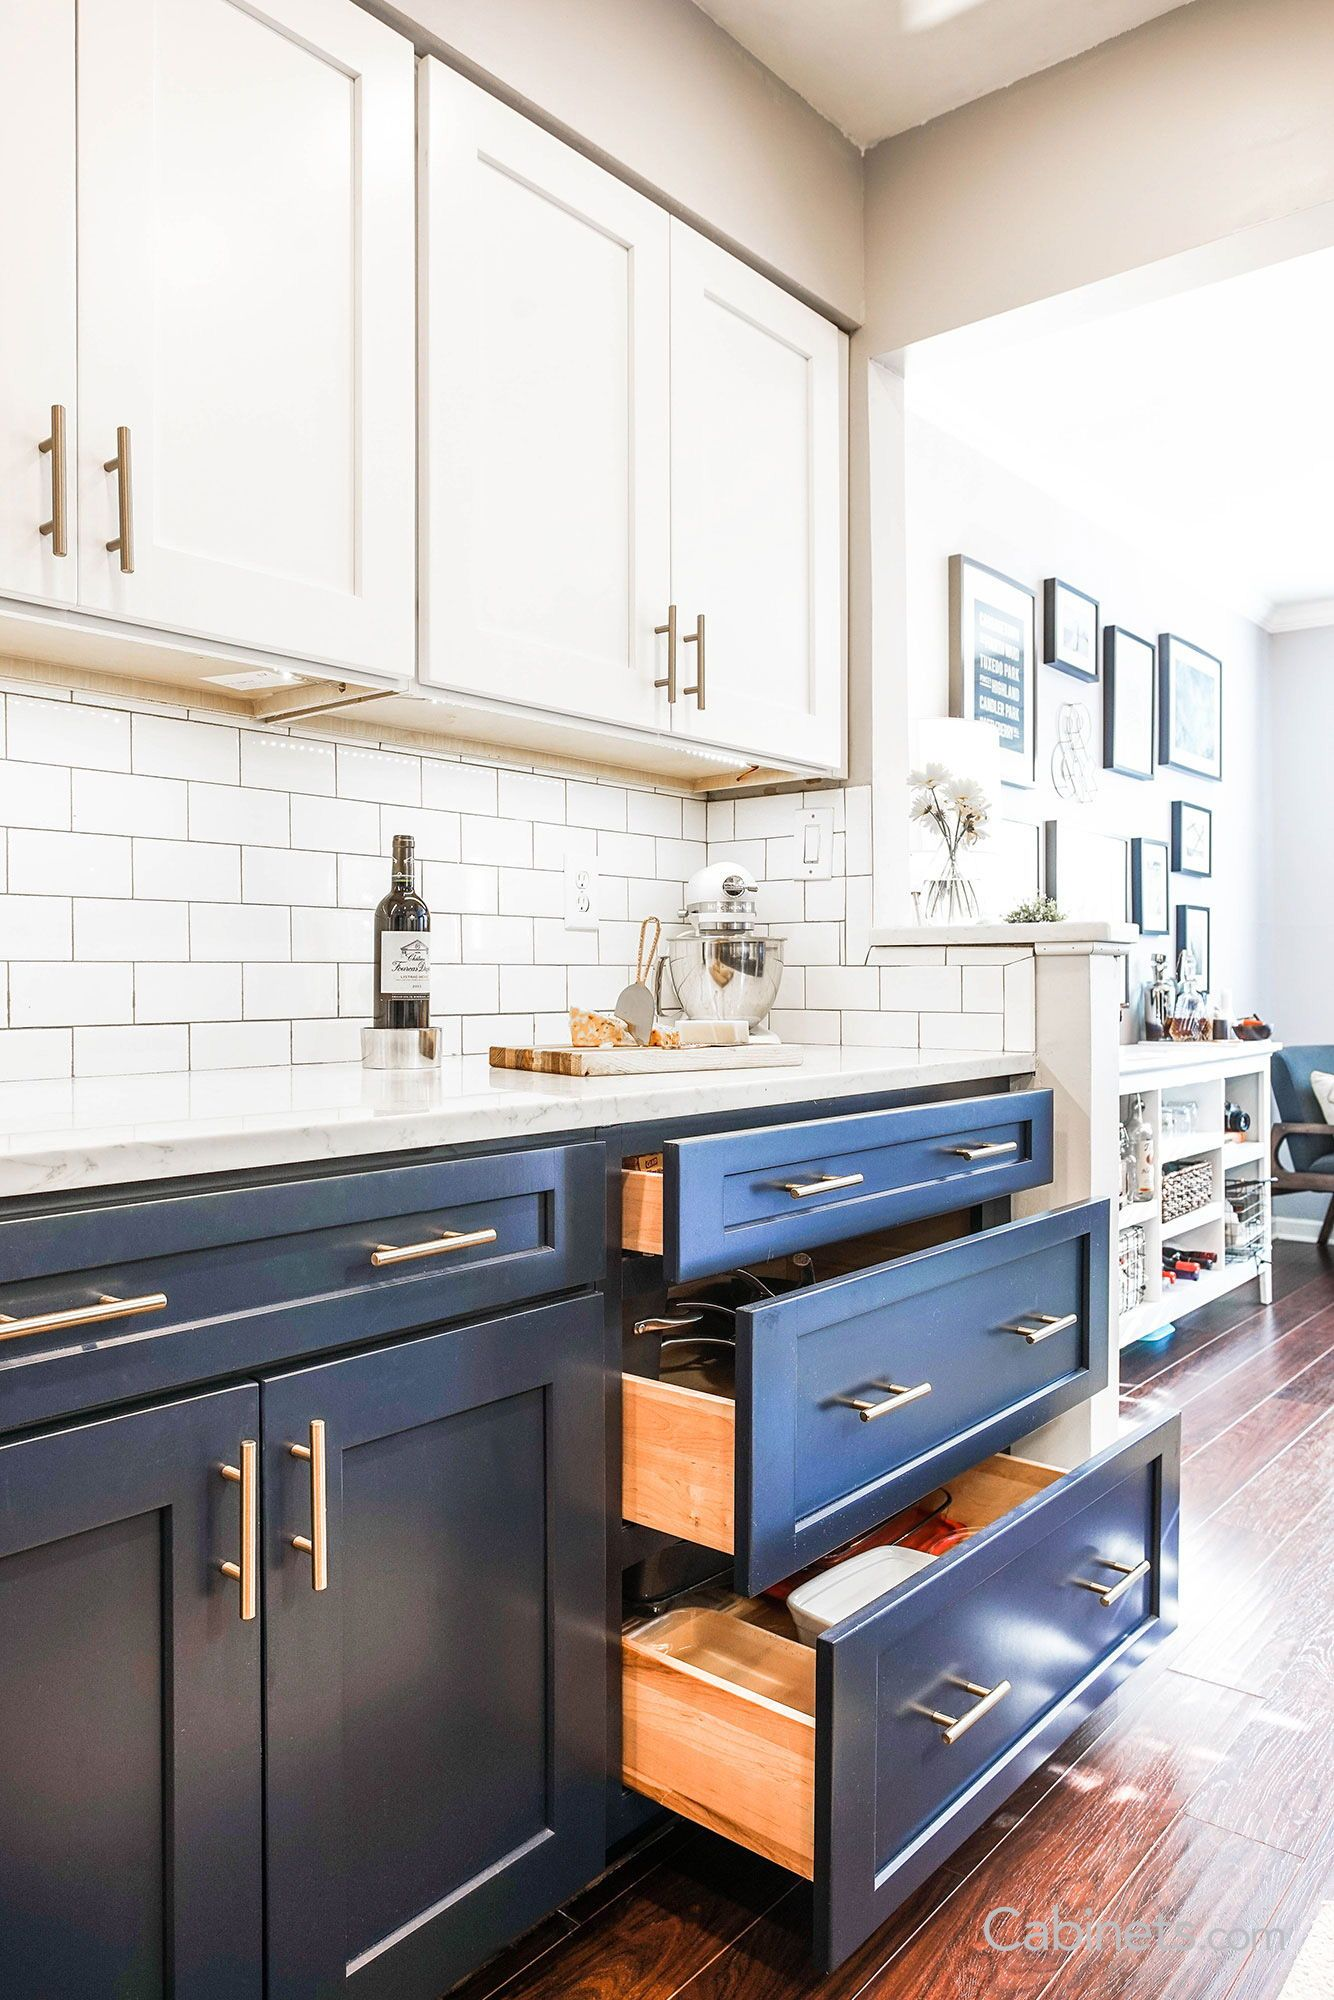 Classic Kitchen With Navy And White Cabinets White Subway And Wood Flooring White Kitchen Design White Shaker Kitchen Navy Kitchen Cabinets